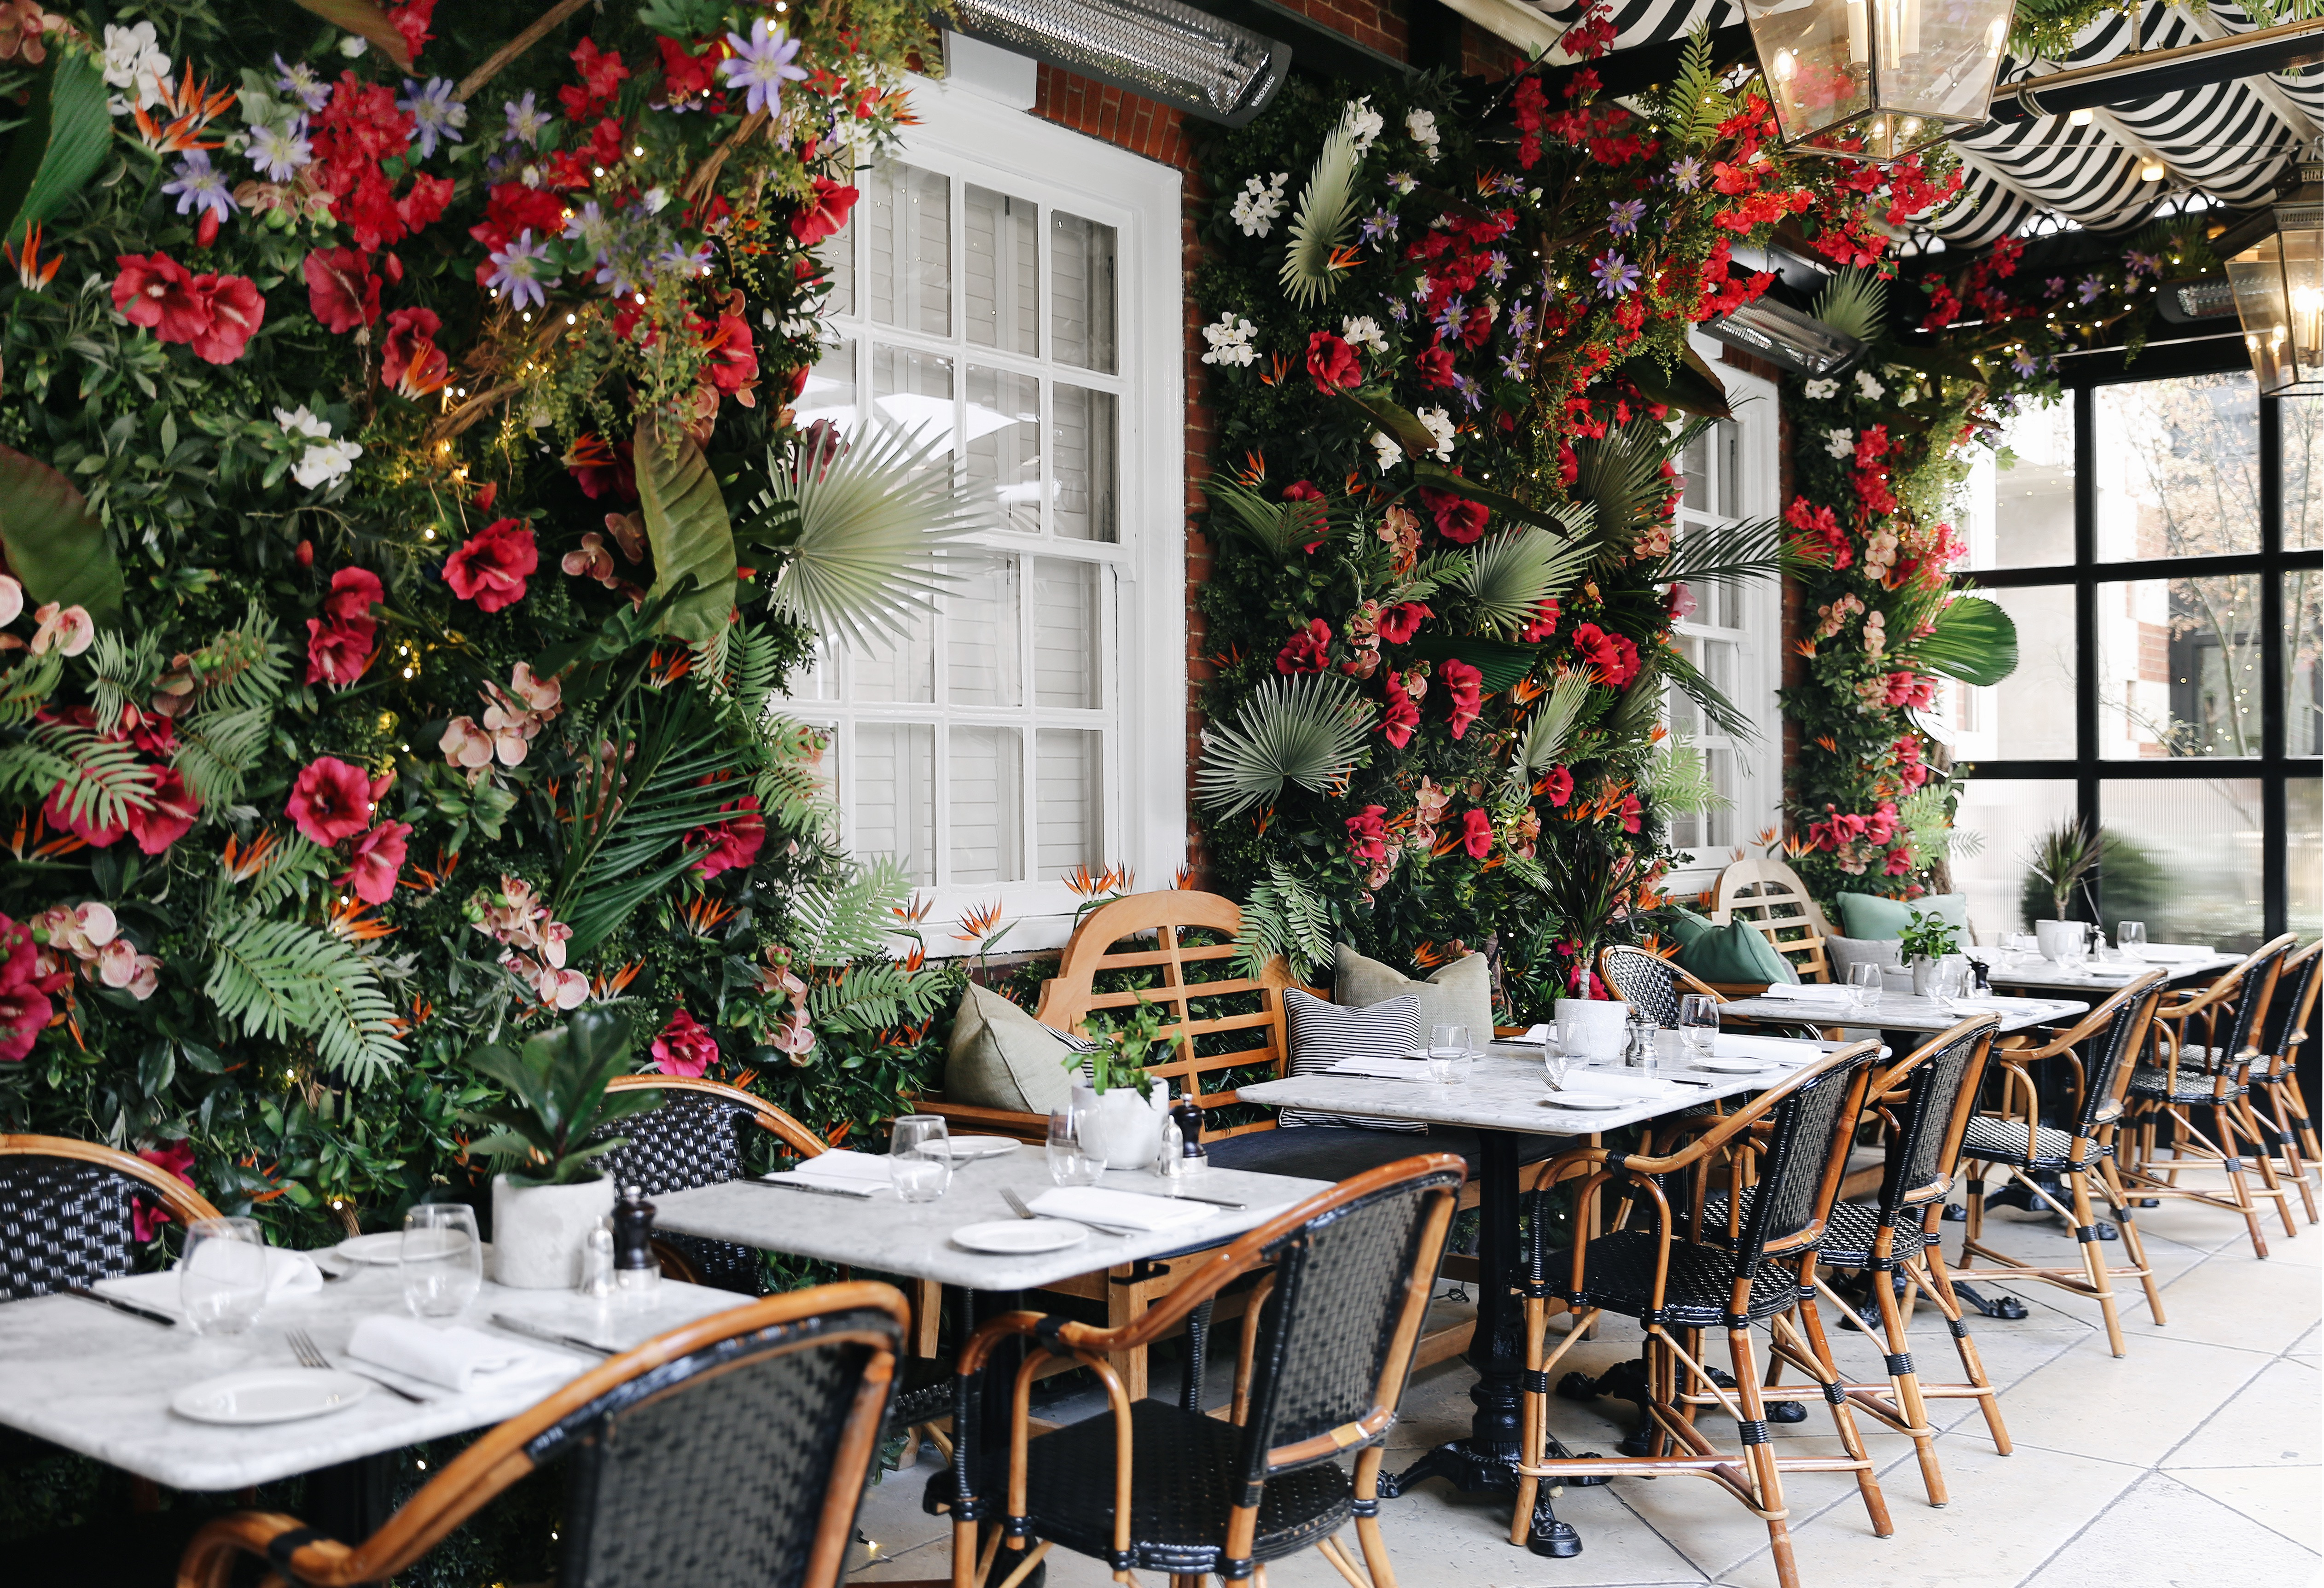 The Luxe List May 2019 - New Jungle Lunch Menu with Vegan Options at Dalloway Terrace